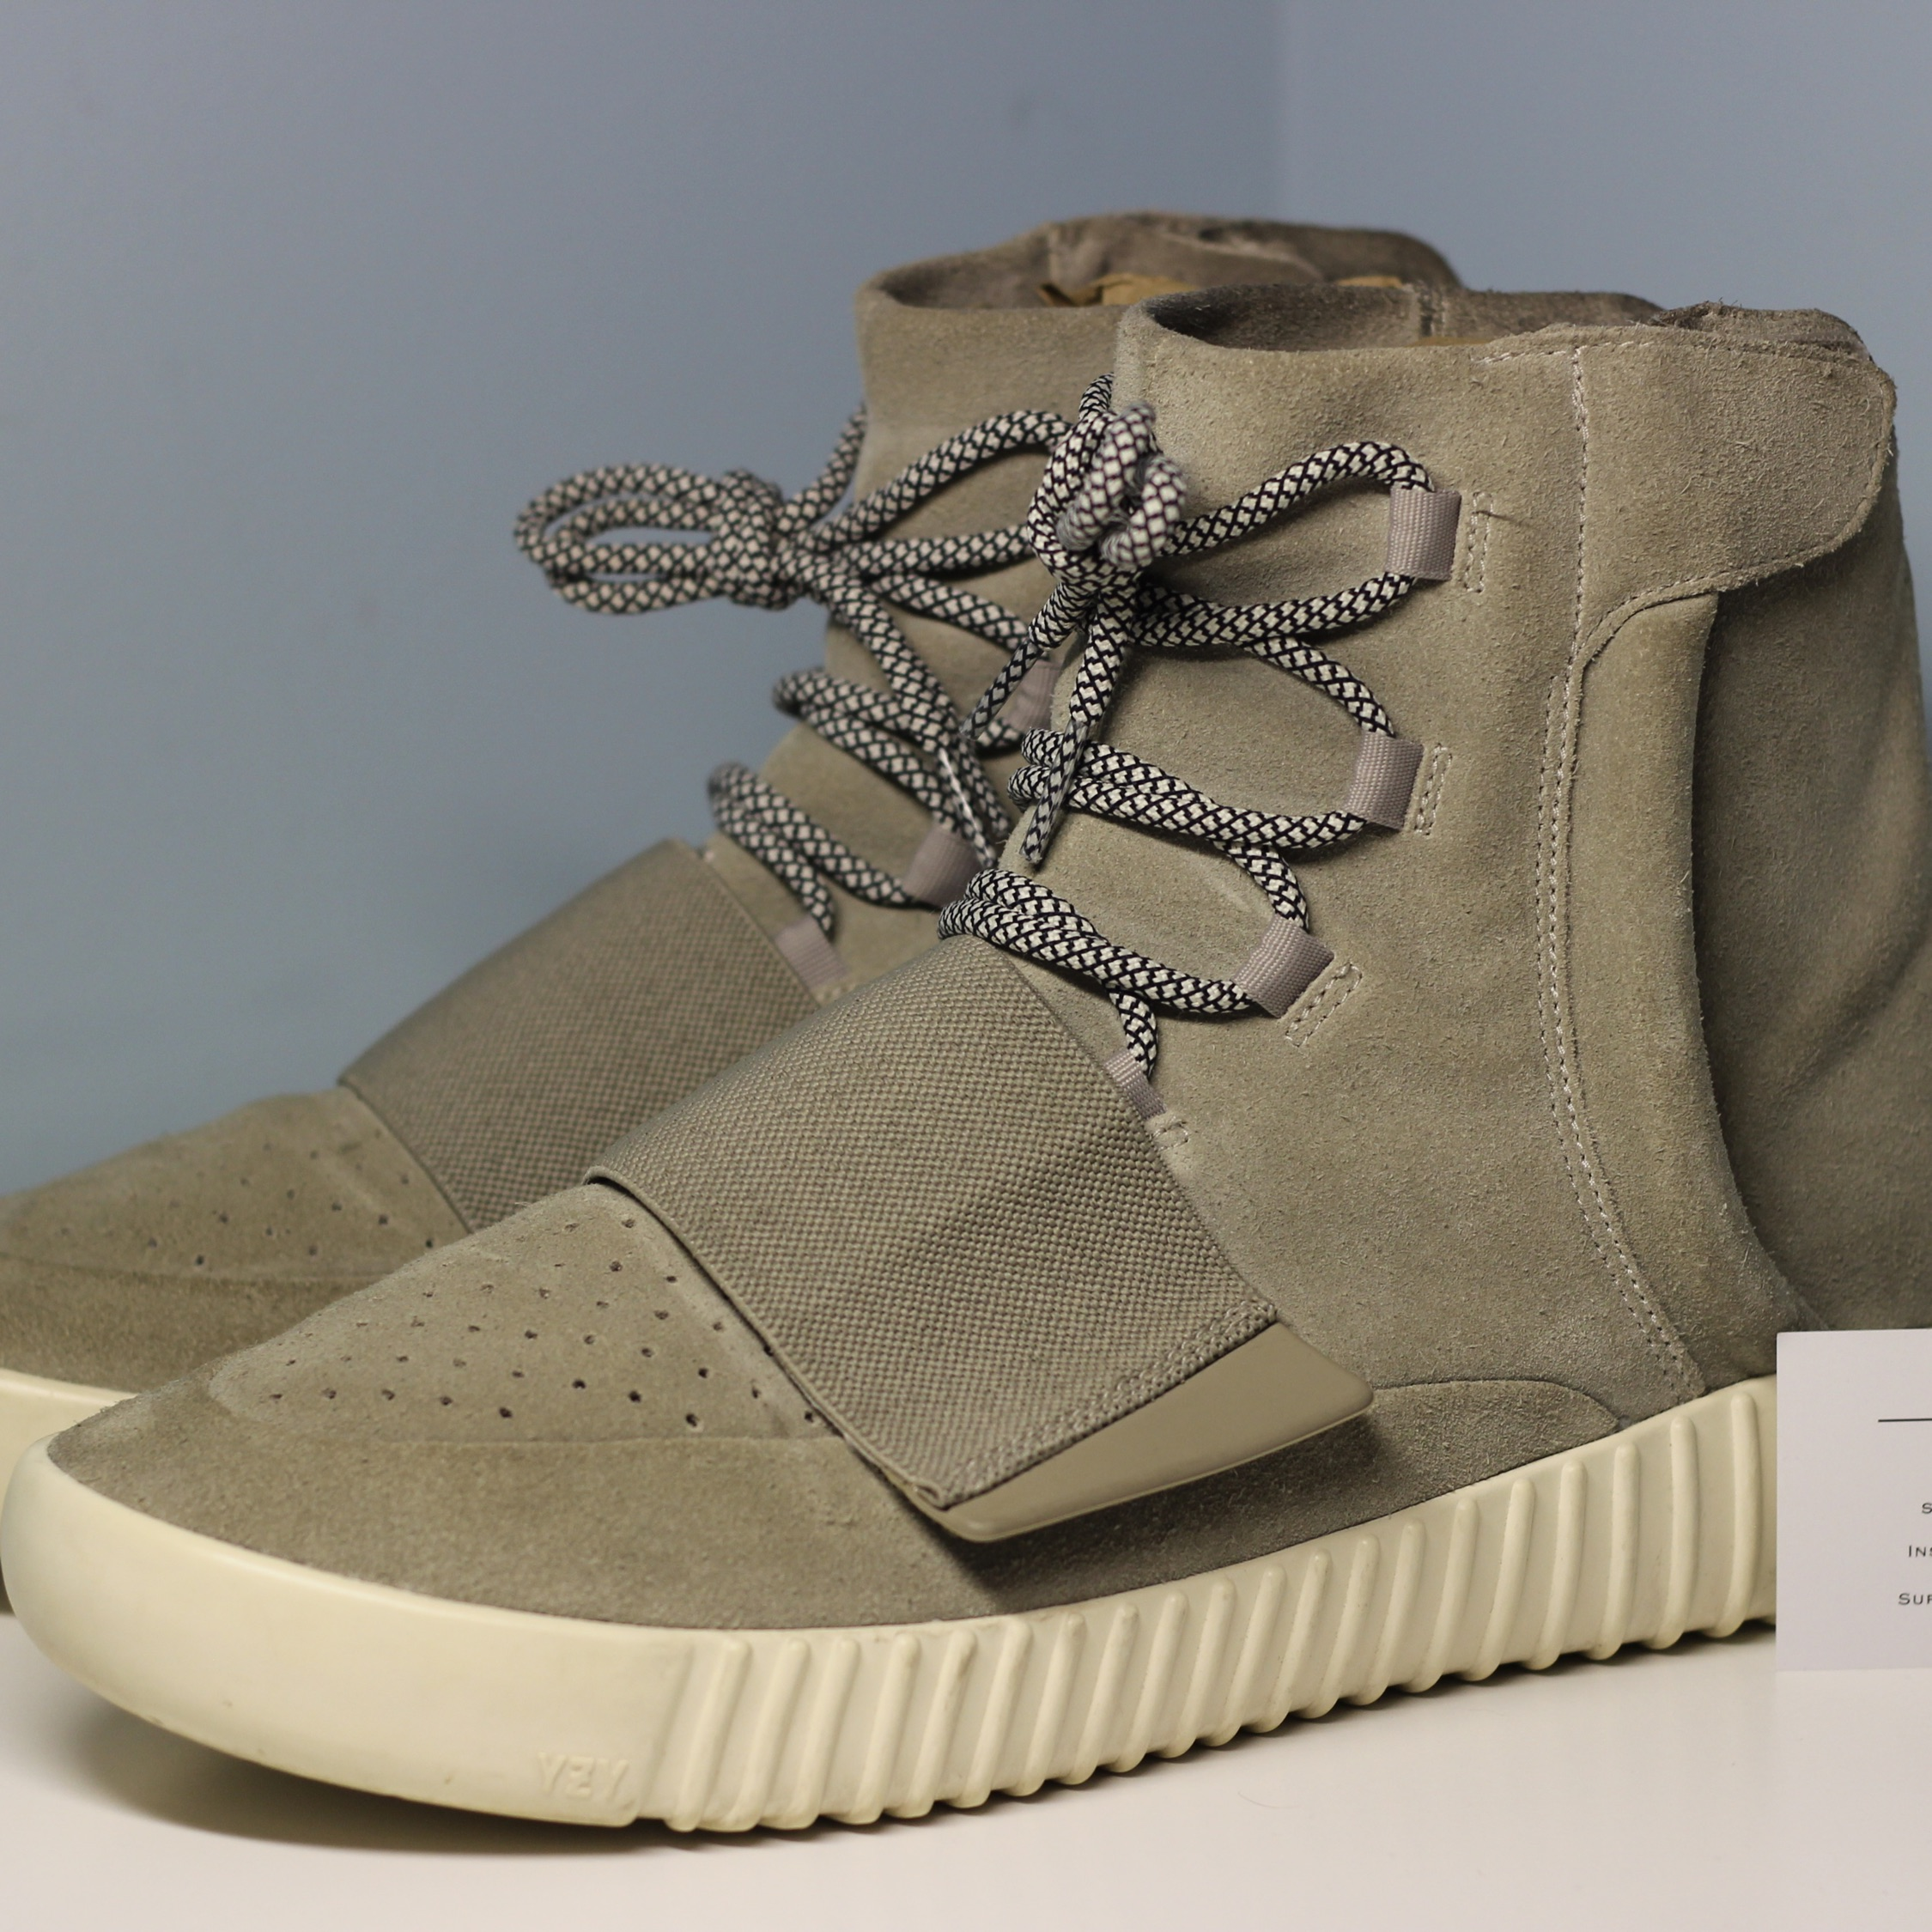 04390abff93da Adidas Kanye West Yeezy Boost 750 Og Light Grey 12